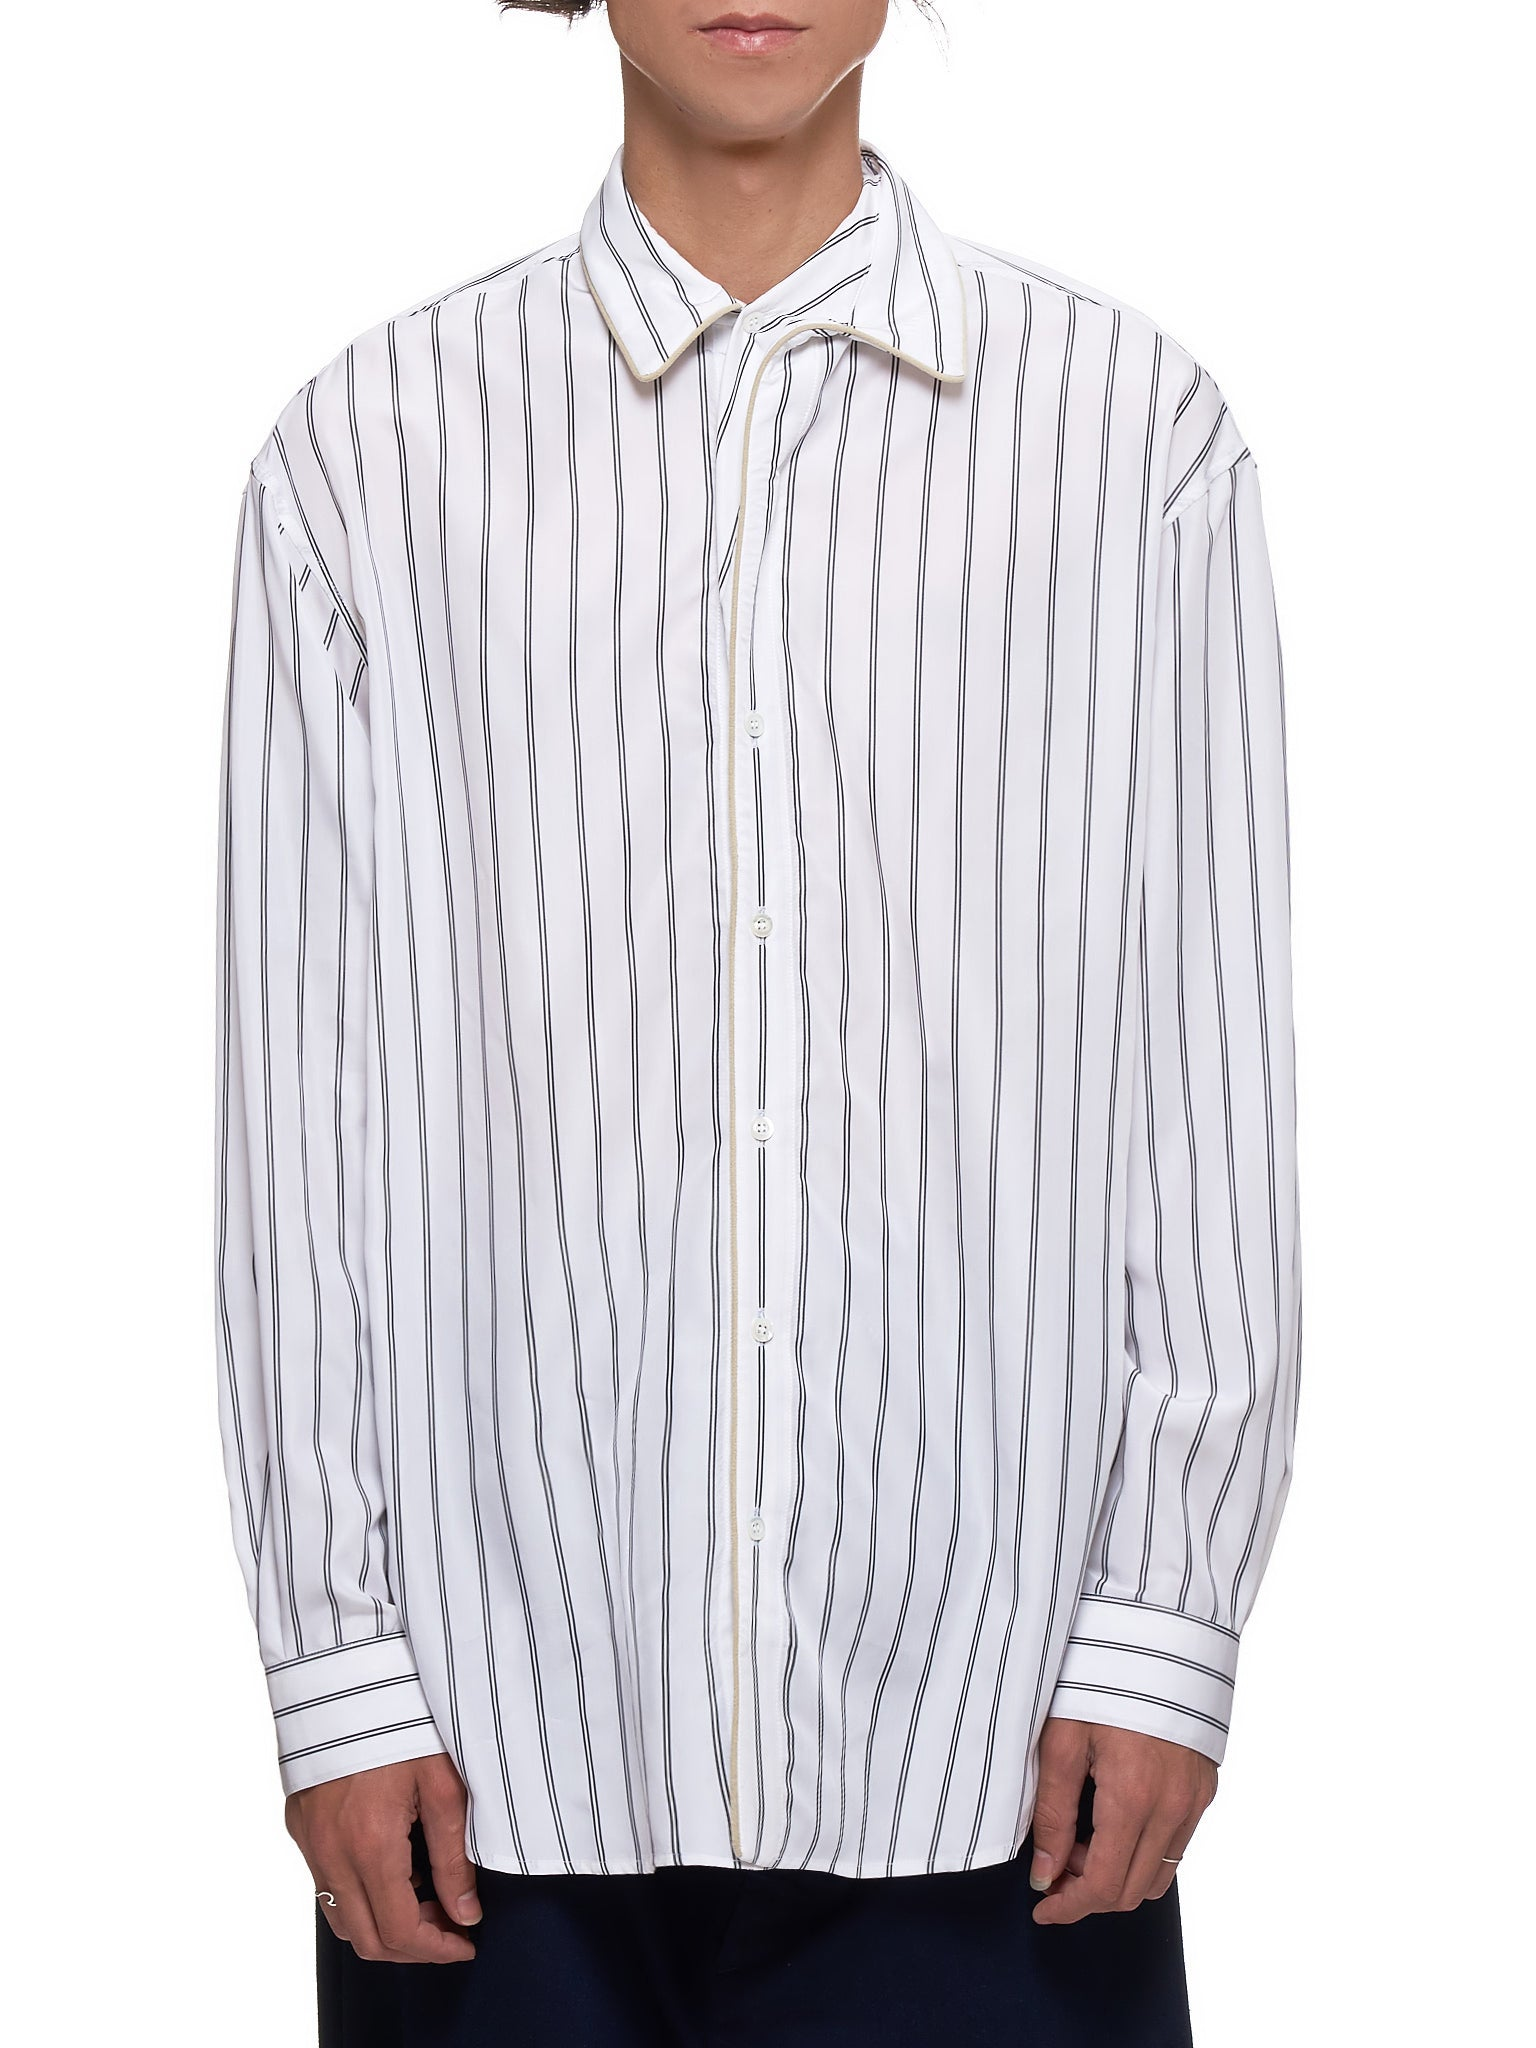 Striped Shirt (SHIRT24B-S17-F03-WHITE-BLACK)